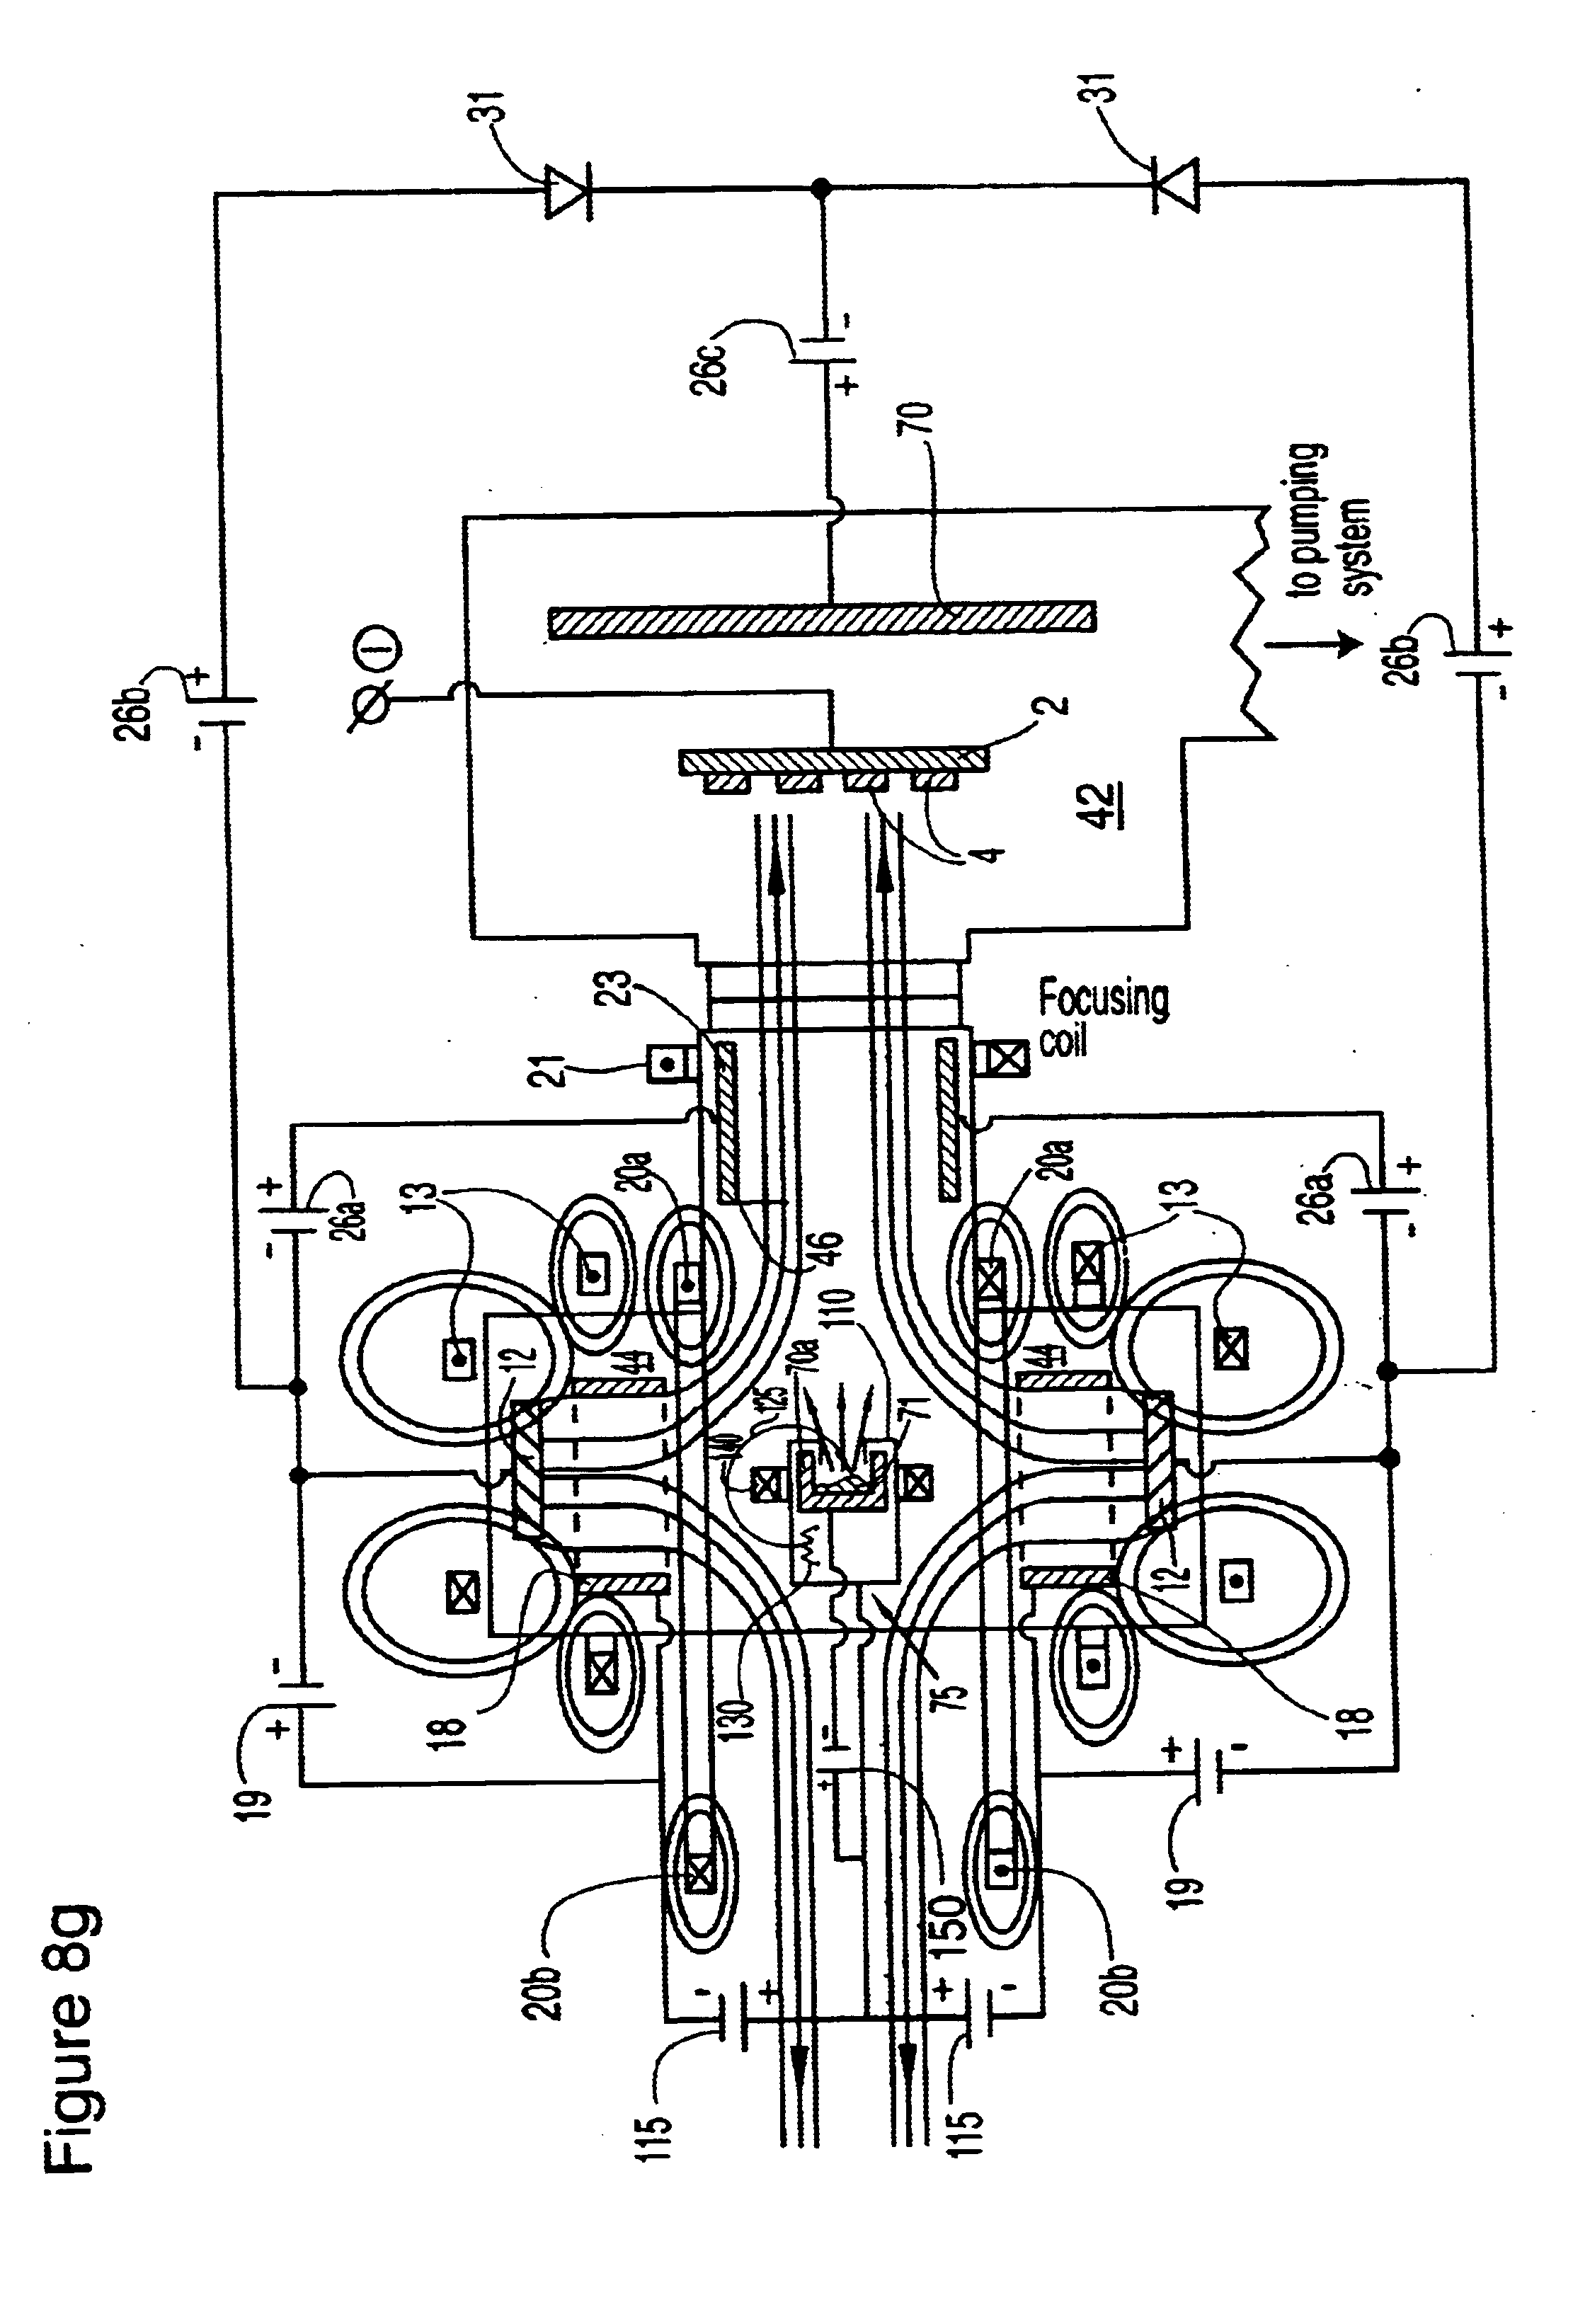 Enchanting 7 pin trailer wiring diagram electric brakes collection